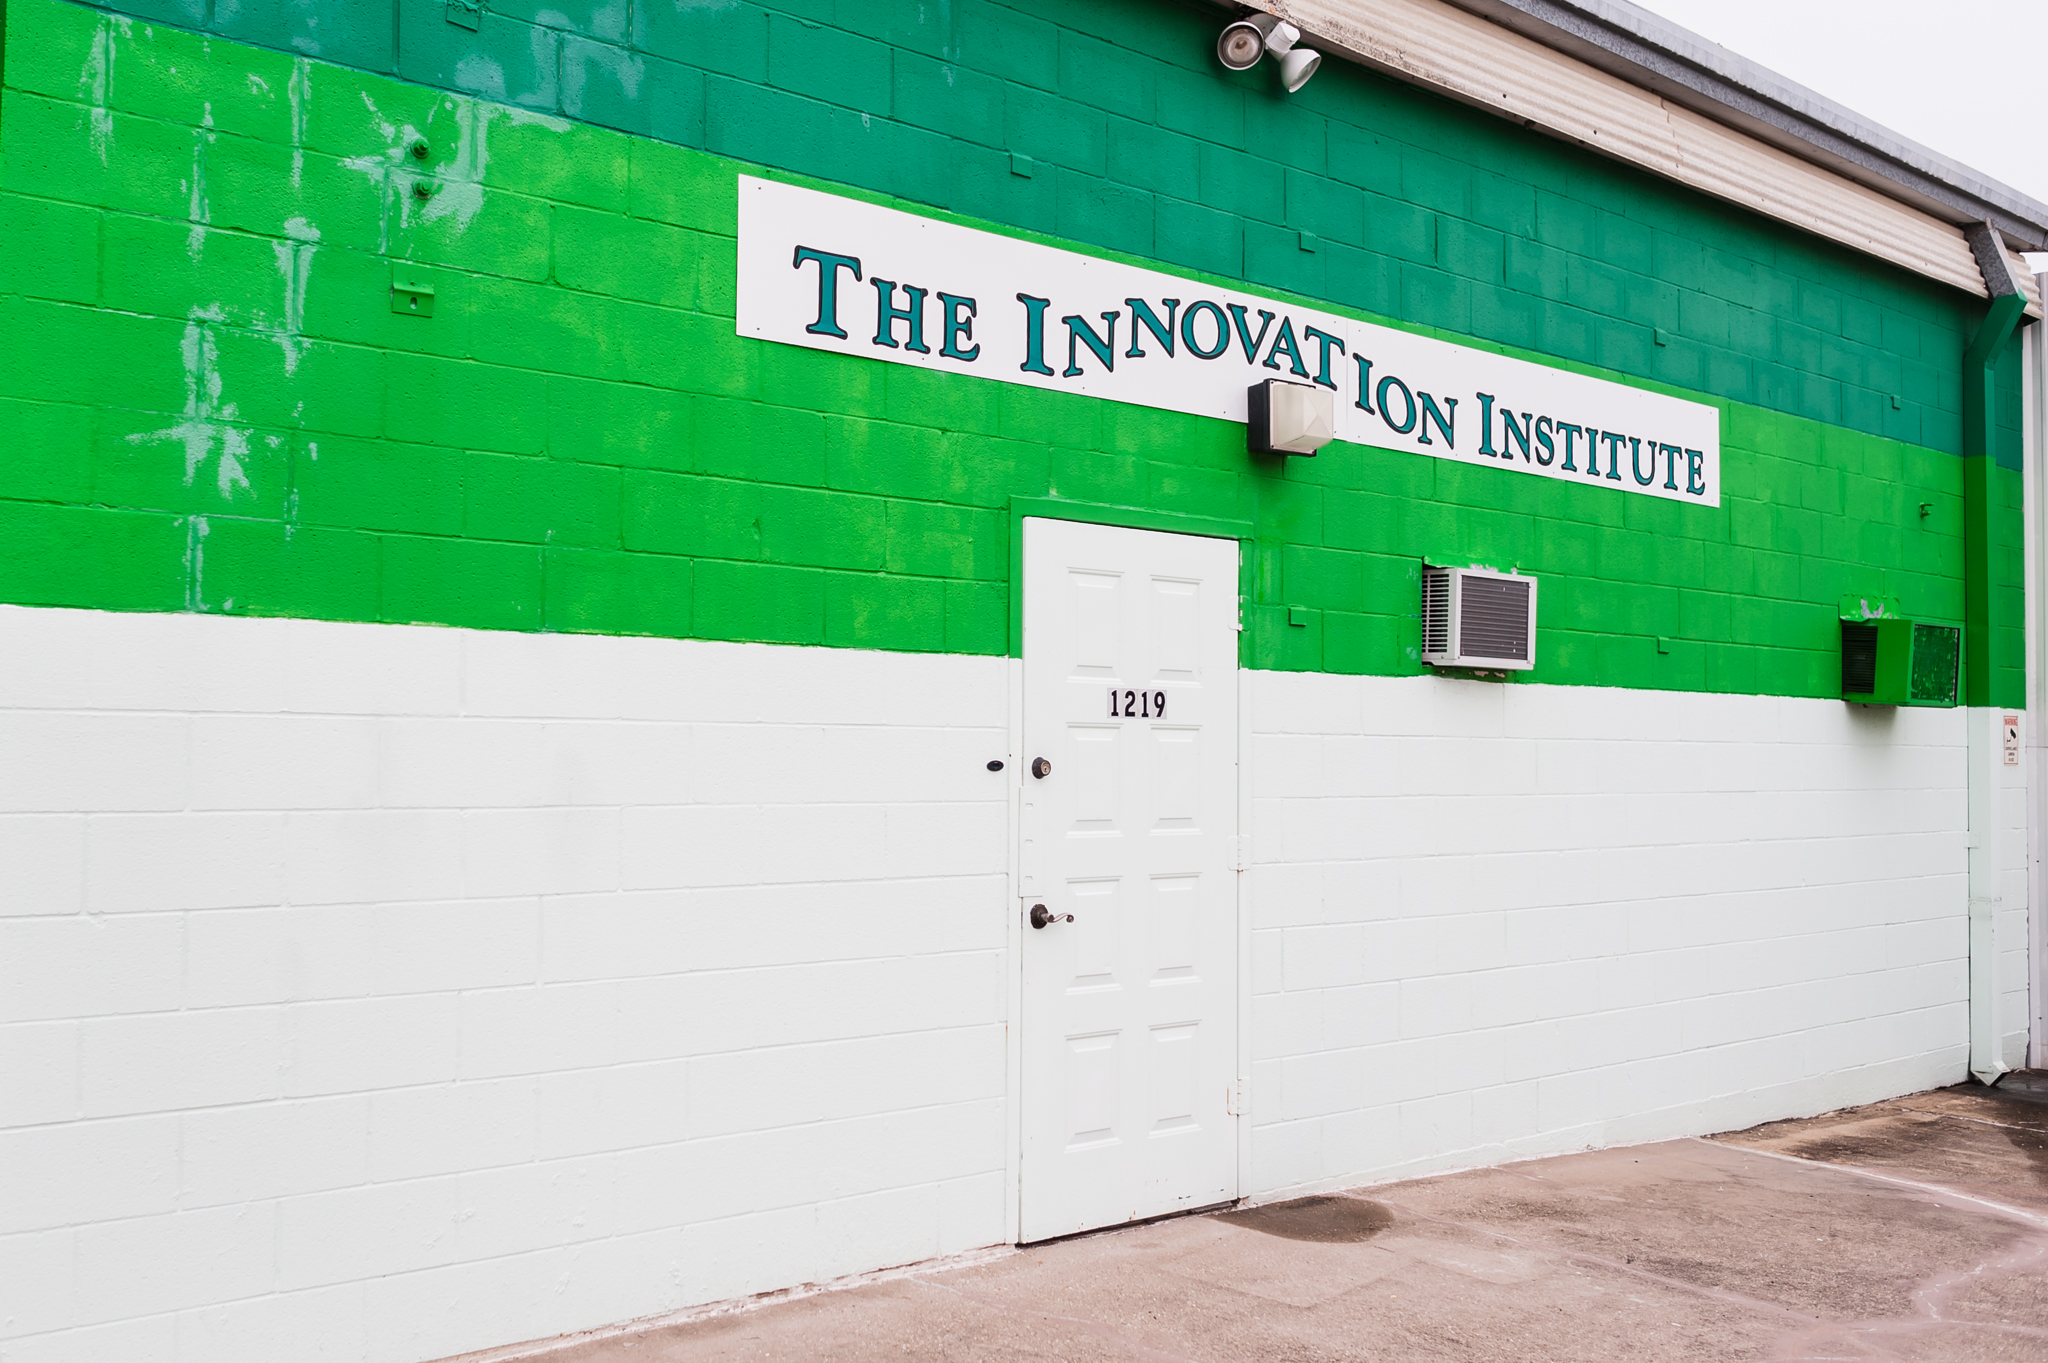 Innovation-Institute-2.jpg